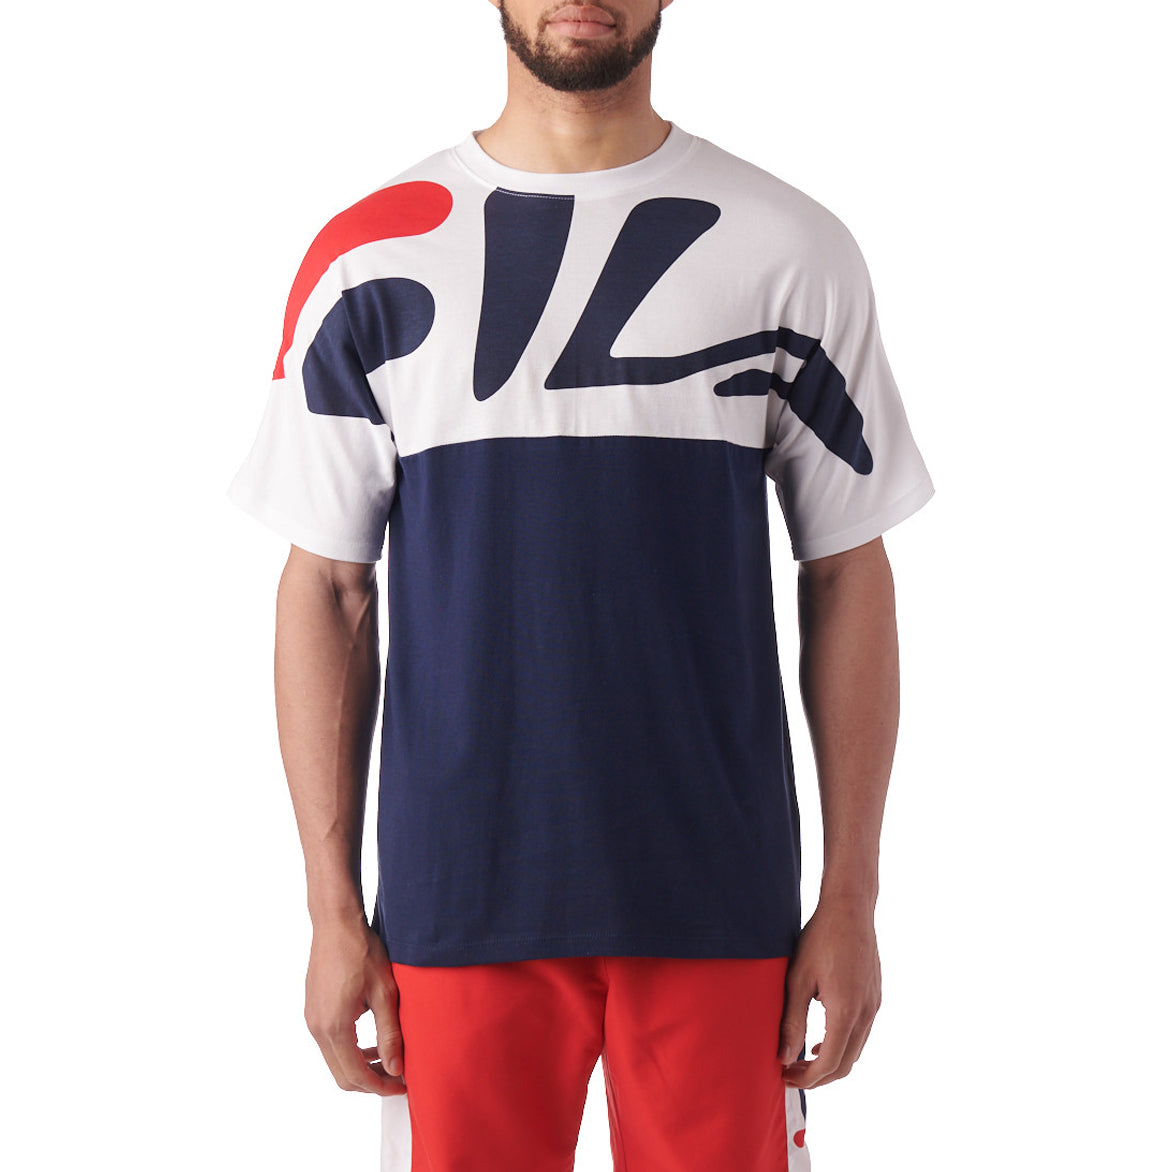 LEE CNS COLORBLOCK TEE - NAVY/ WHITE